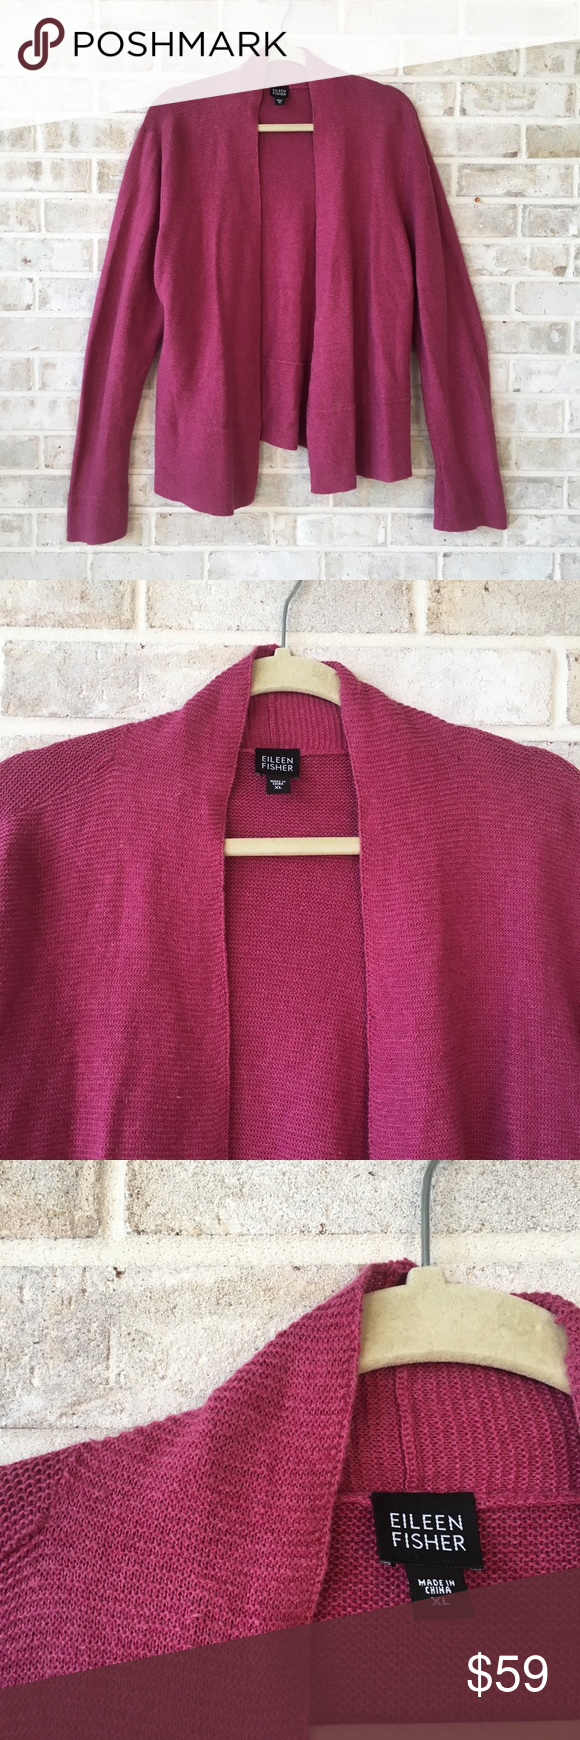 Eileen Fisher Cardigan Sweater Open Size XL Pink | Eileen fisher ...